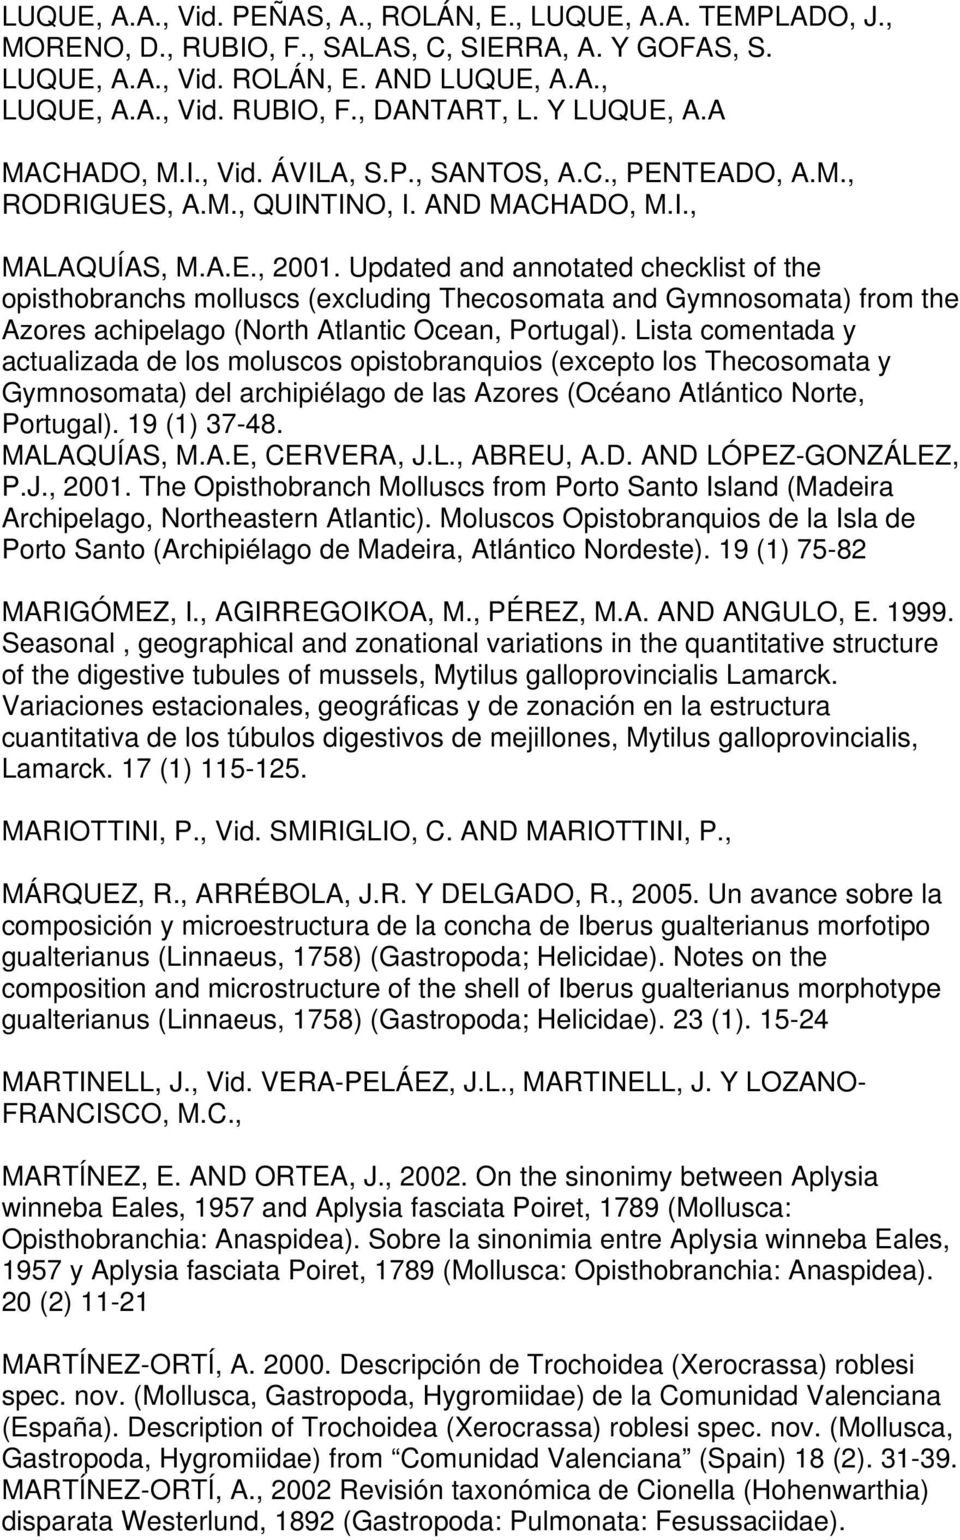 Updated and annotated checklist of the opisthobranchs molluscs (excluding Thecosomata and Gymnosomata) from the Azores achipelago (North Atlantic Ocean, Portugal).